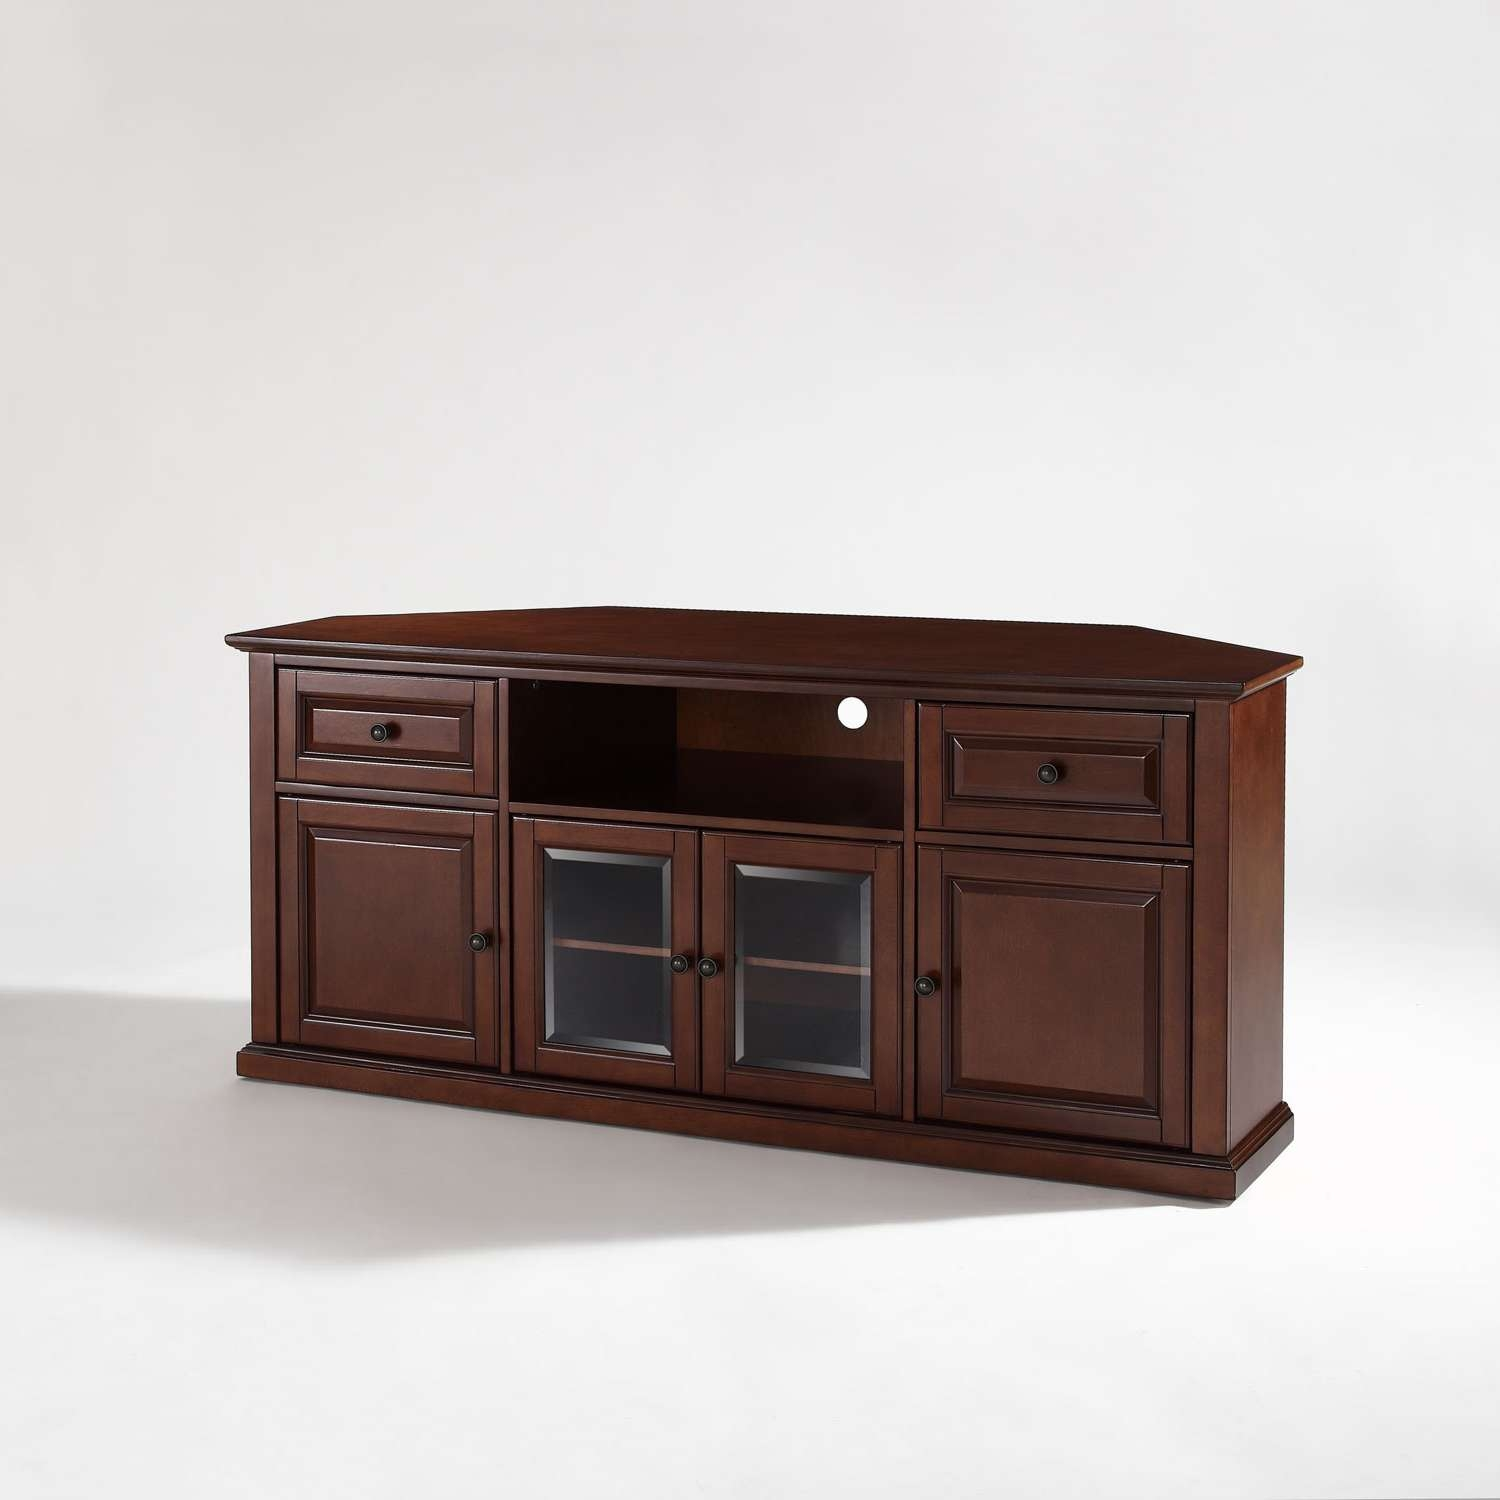 60 Inch Corner Tv Stand In Vintage Mahogany Crosley Furniture In Mahogany Corner Tv Cabinets (View 4 of 20)